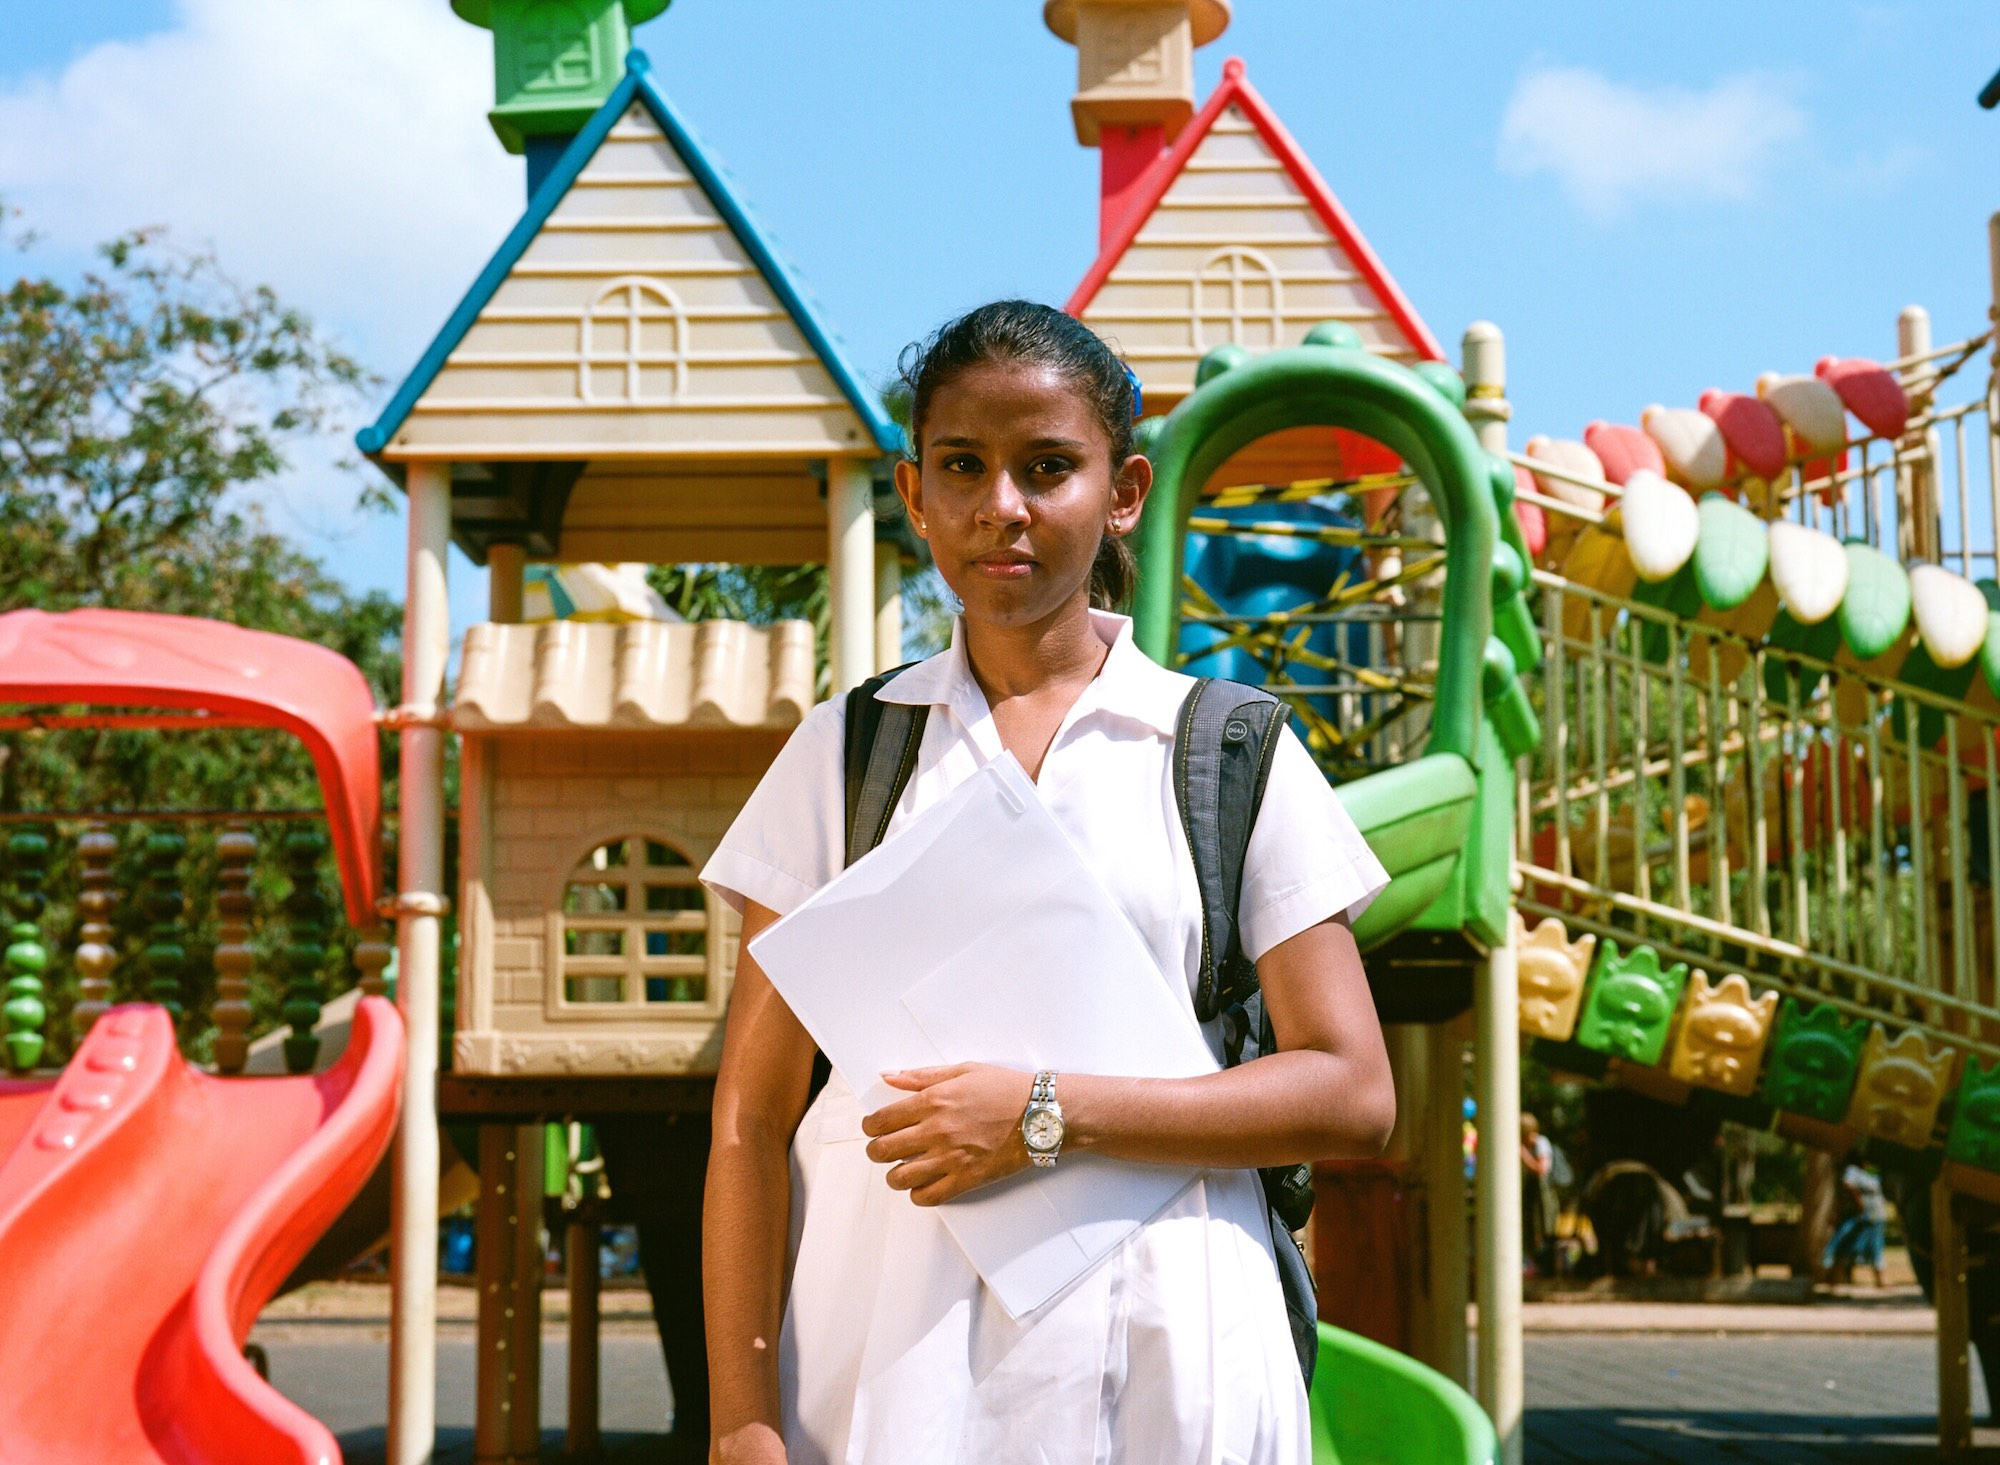 Eliza Hatch's documentary project Cheer Up Luv in Sri Lanka